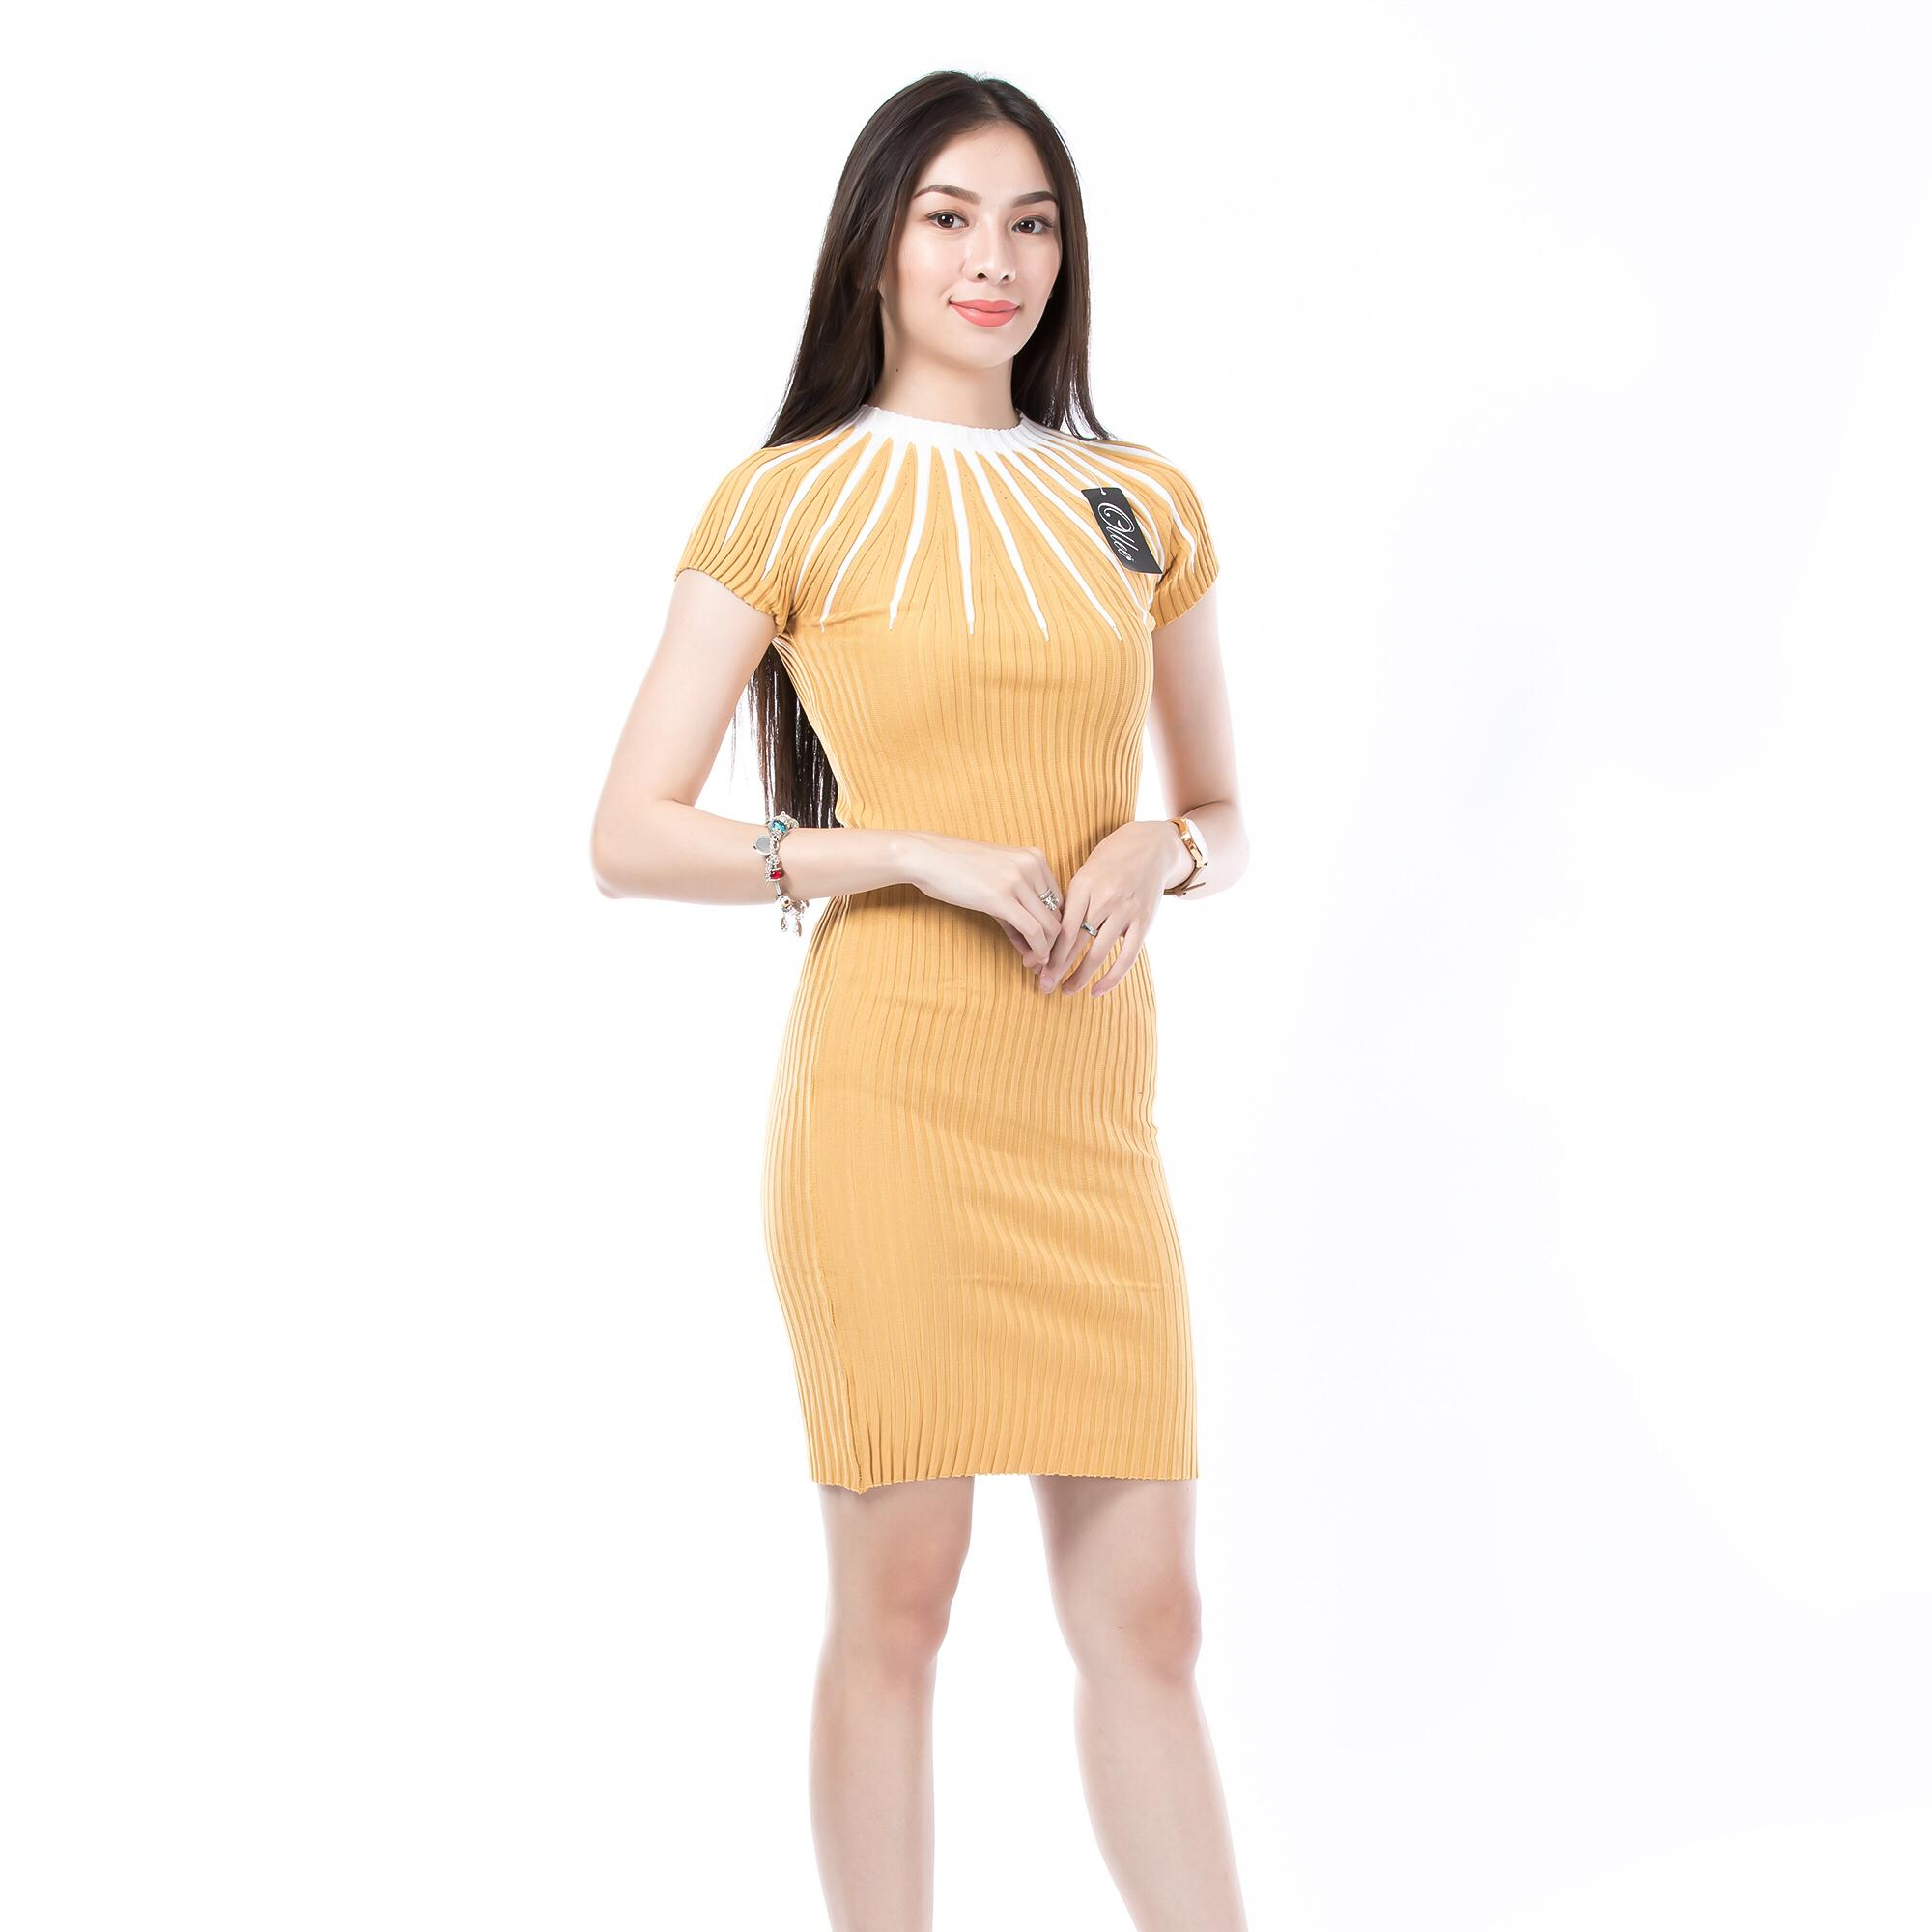 Fashion dresses for sale dress for women online brands prices reviews in  philippines jpg 2000x2000 Adorable bea5a5668